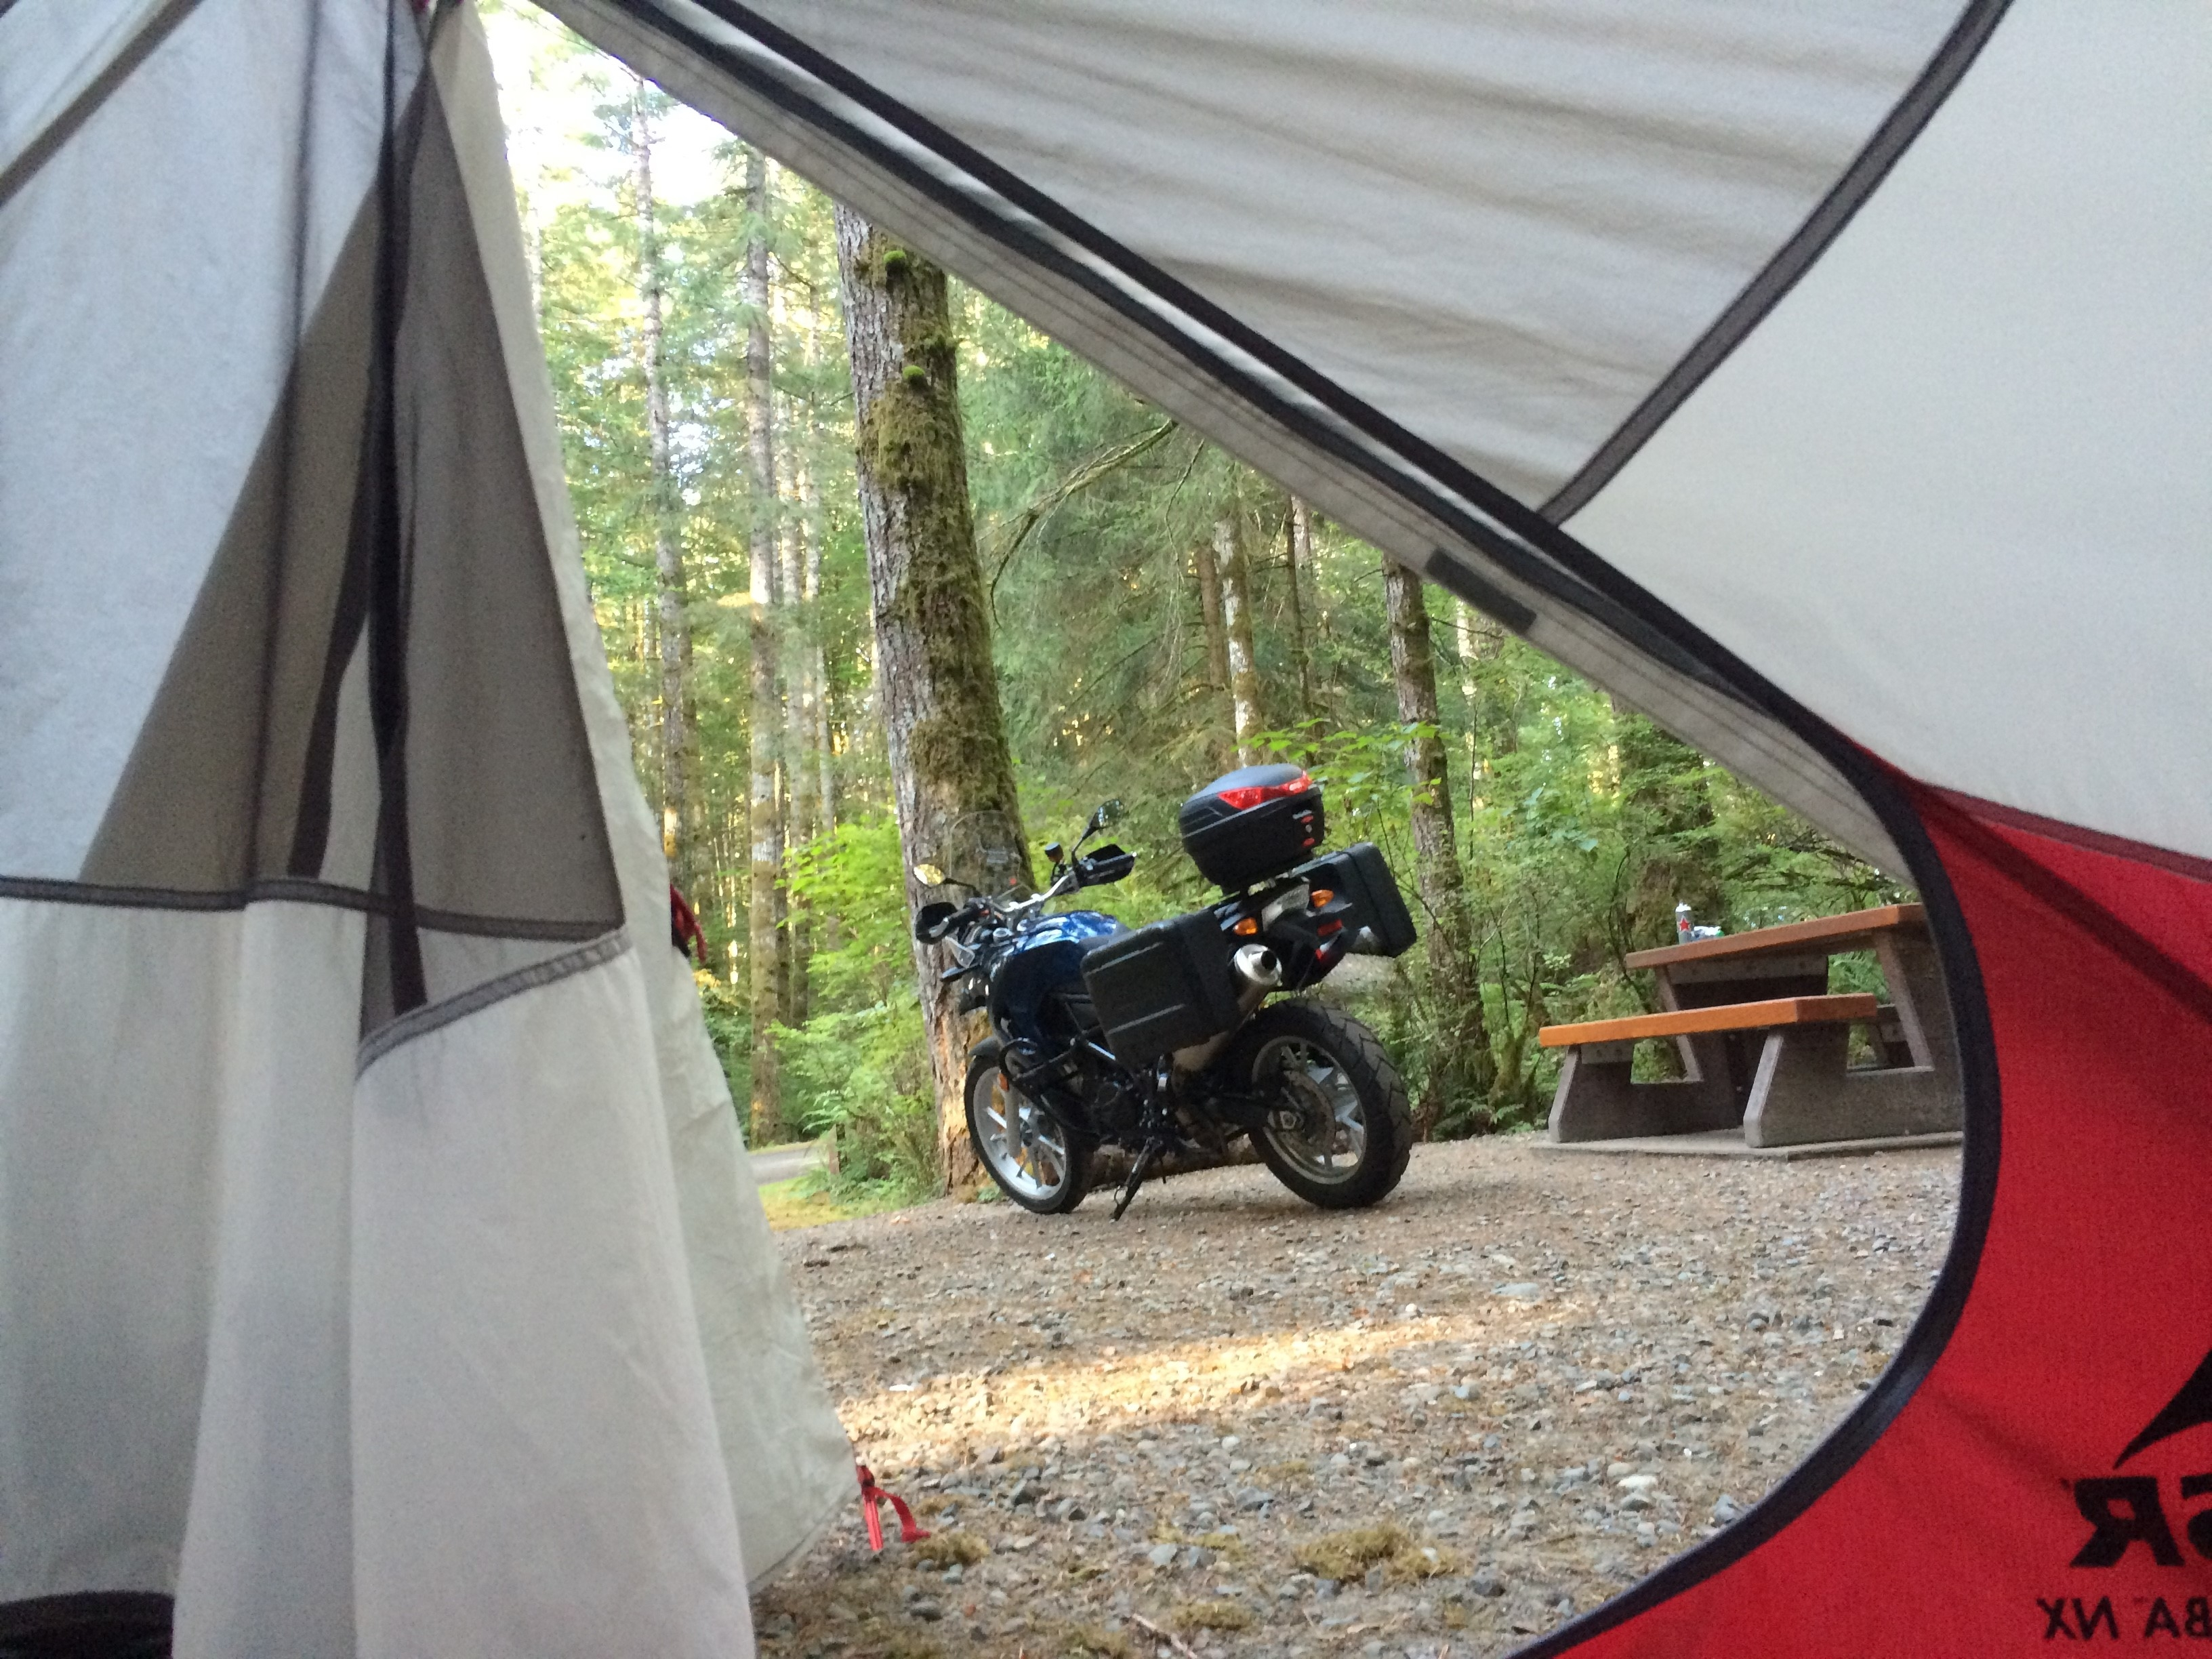 2010 BMW F650GS, camping in Campbell River BC